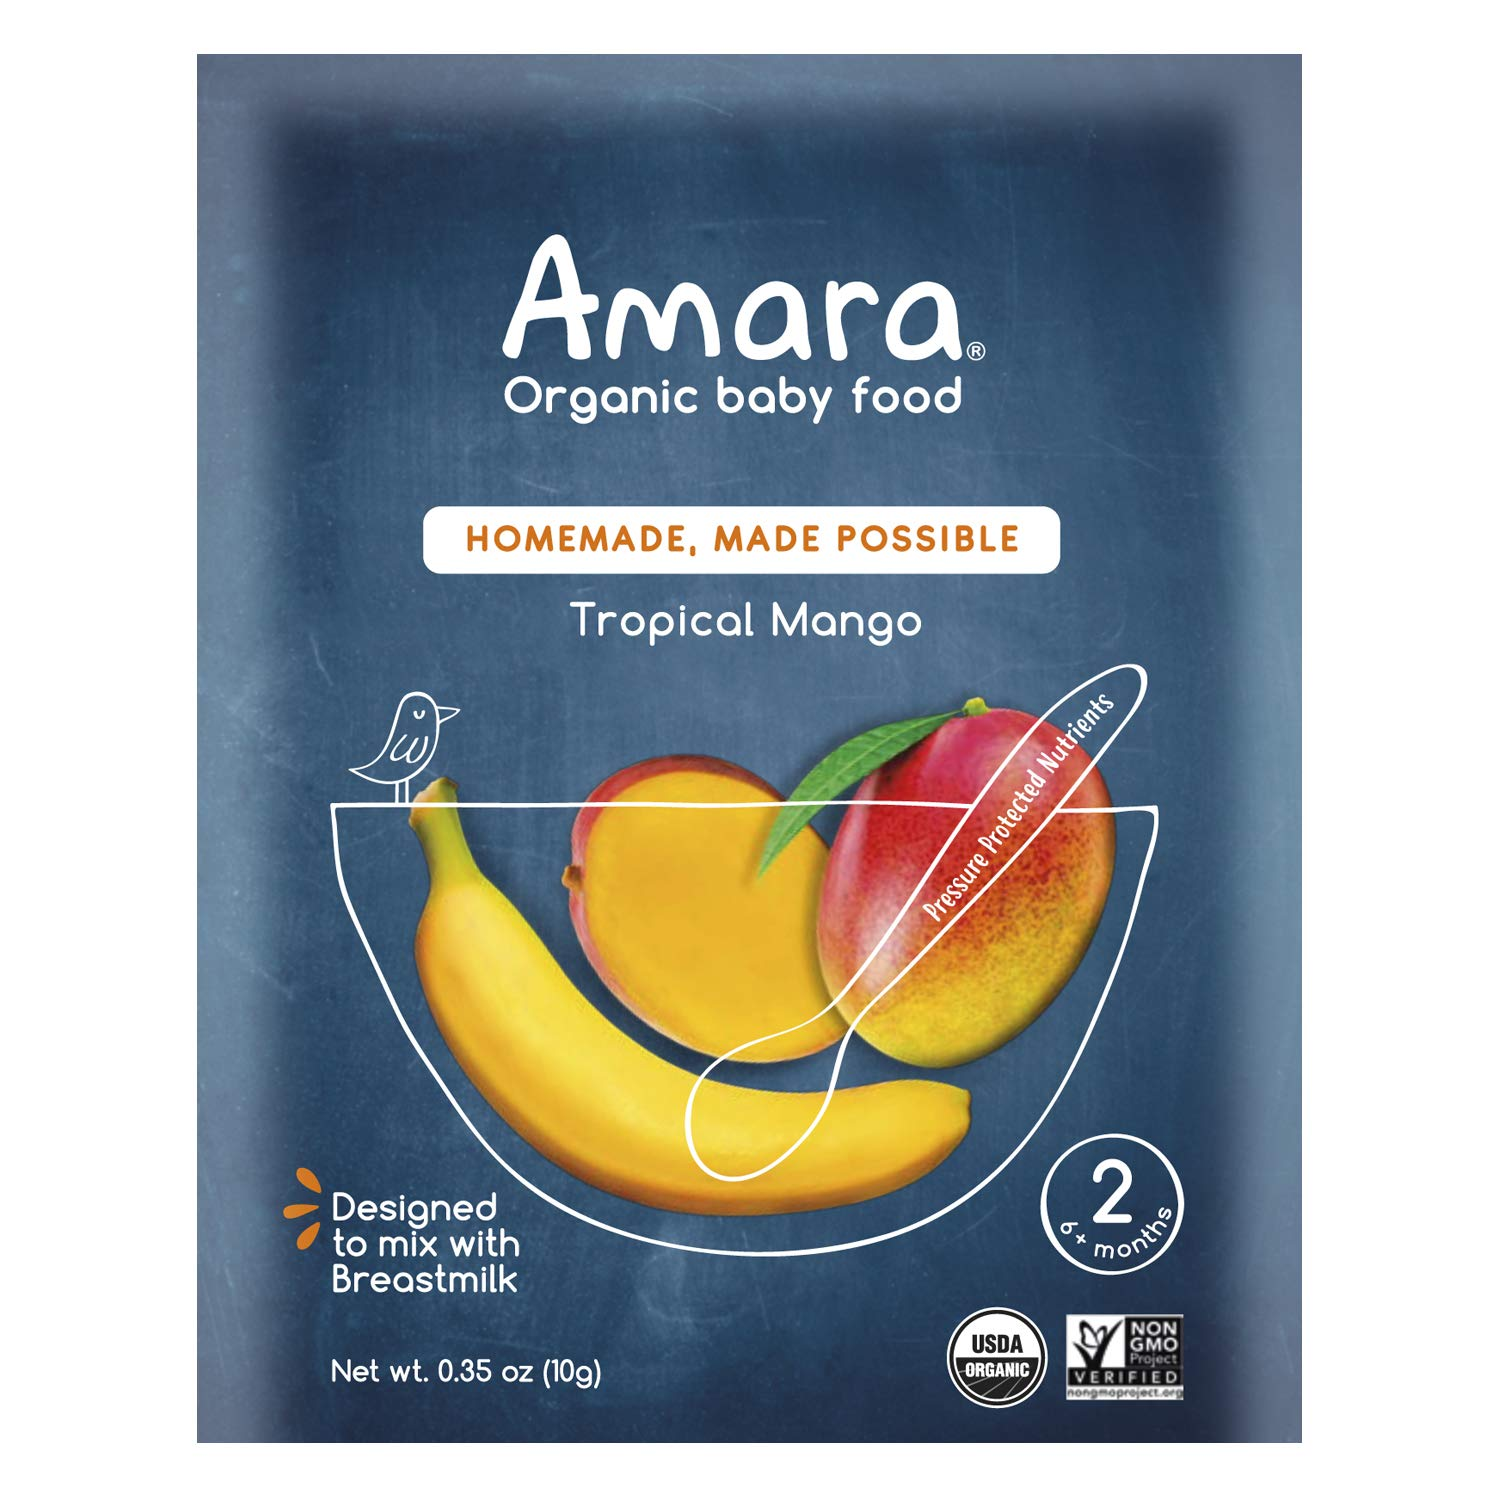 Amara Organic Baby Food | Tropical Mango | Homemade Made Possible | Mix with Breastmilk, Formula or Water | Certified Organic, Non-GMO, No Added Sugars | Stage 2 - Babies 6 Months & Older | 7 Pouches